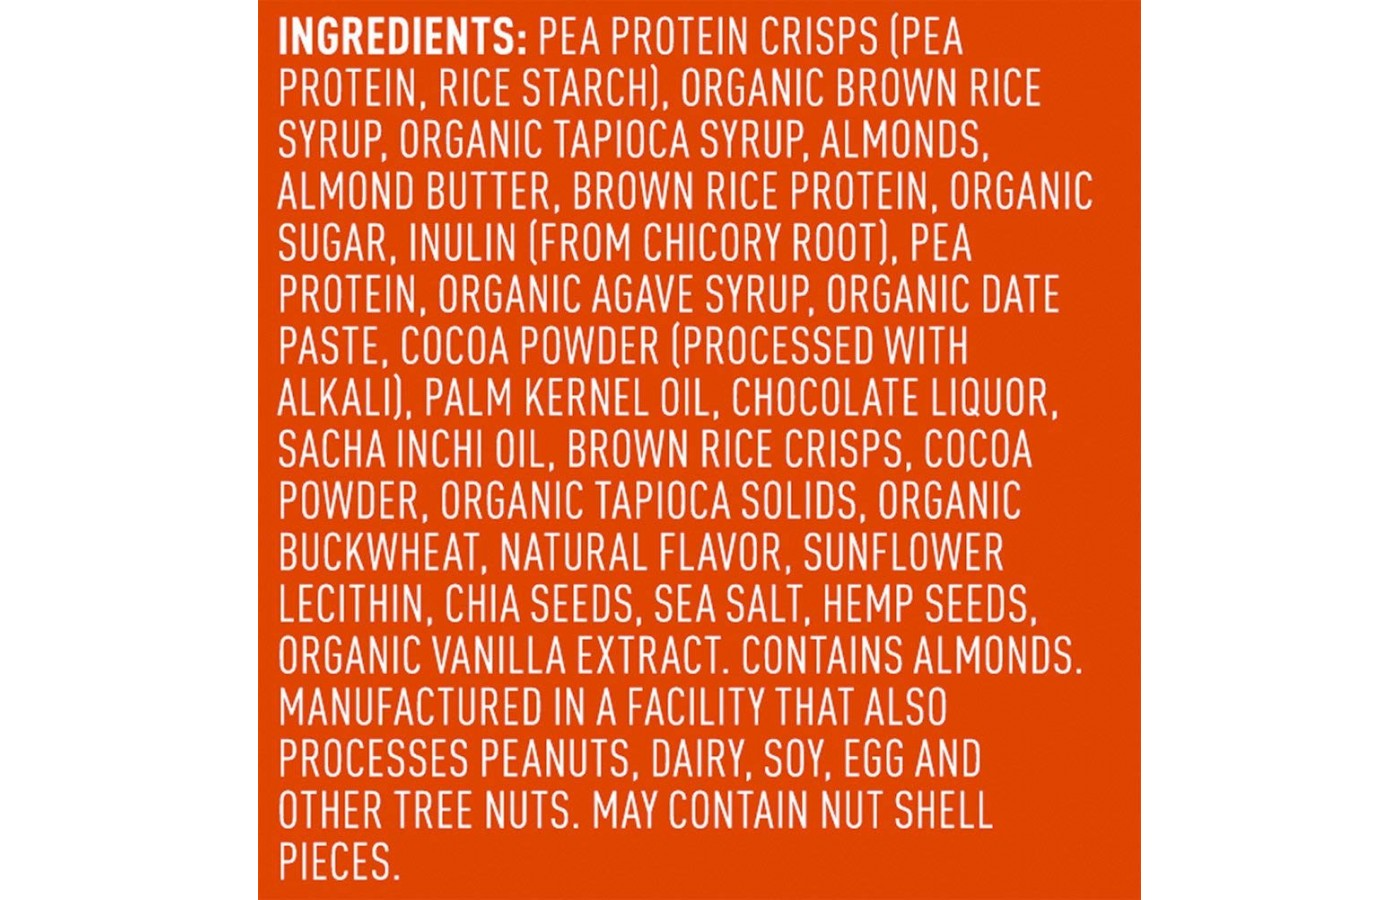 Vega Snack Ingredient lists